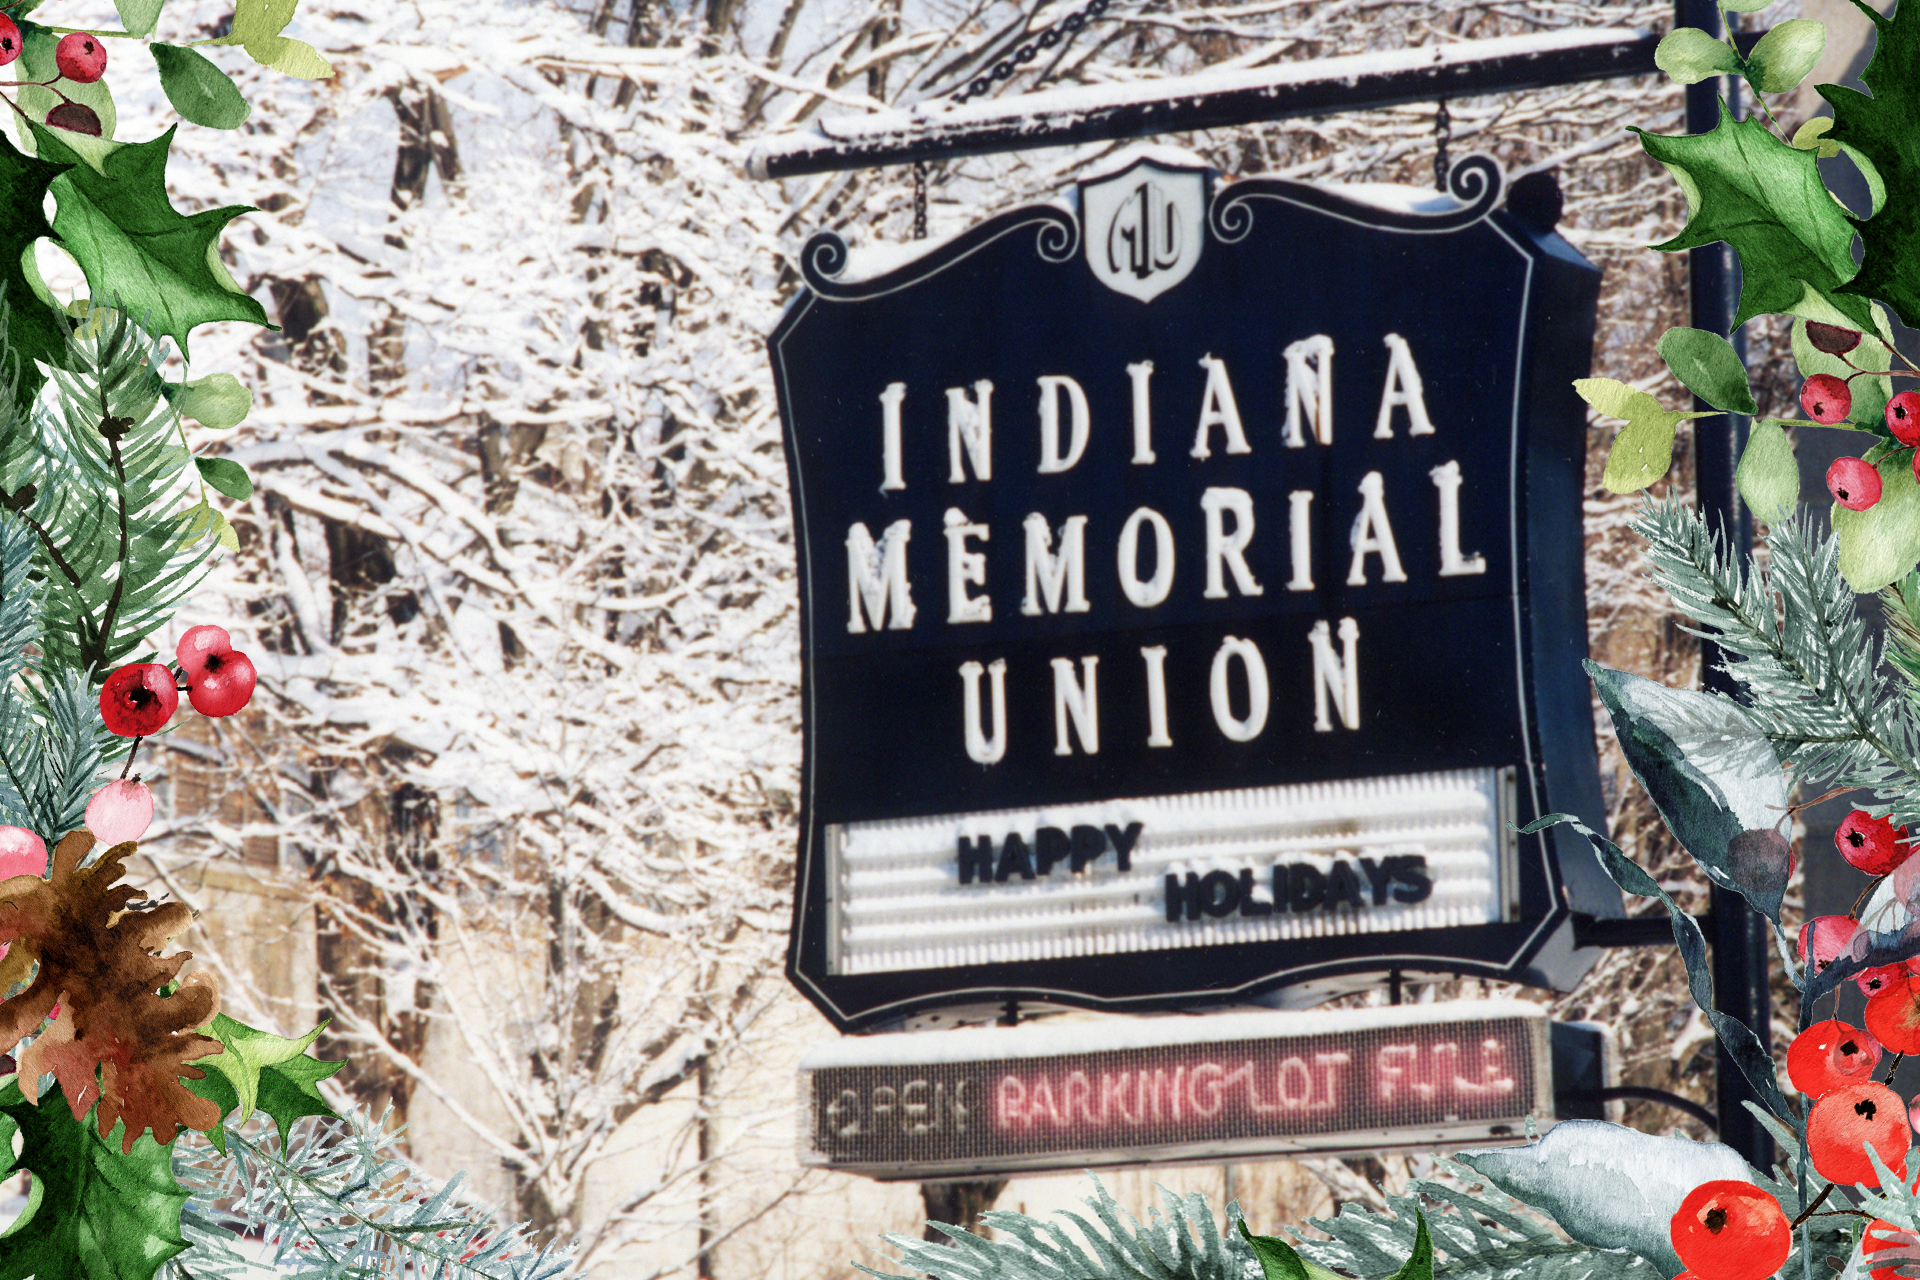 A frame of festive greenery is overlaid on a historical photo depicting a snow-covered sign that reads Indiana Memorial Union.